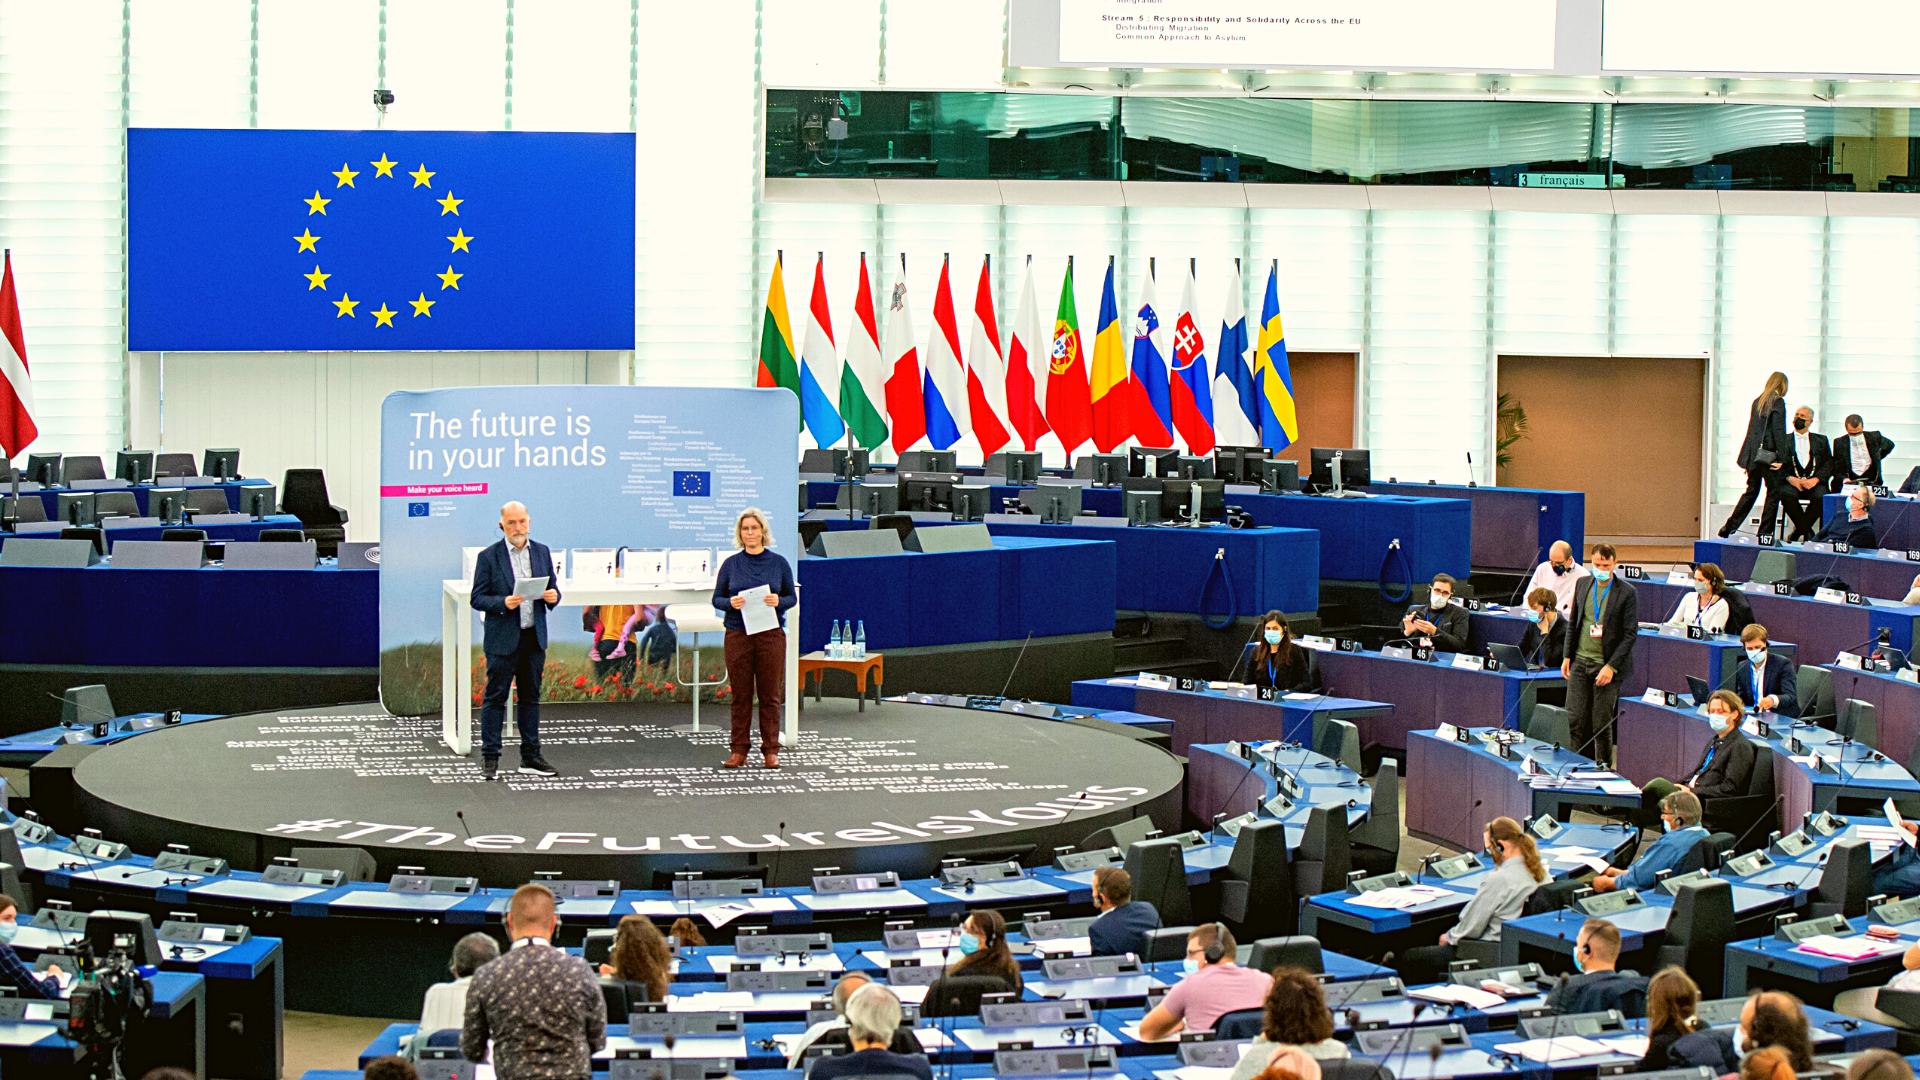 Picture of the Confrence on Europe from the European Parlament